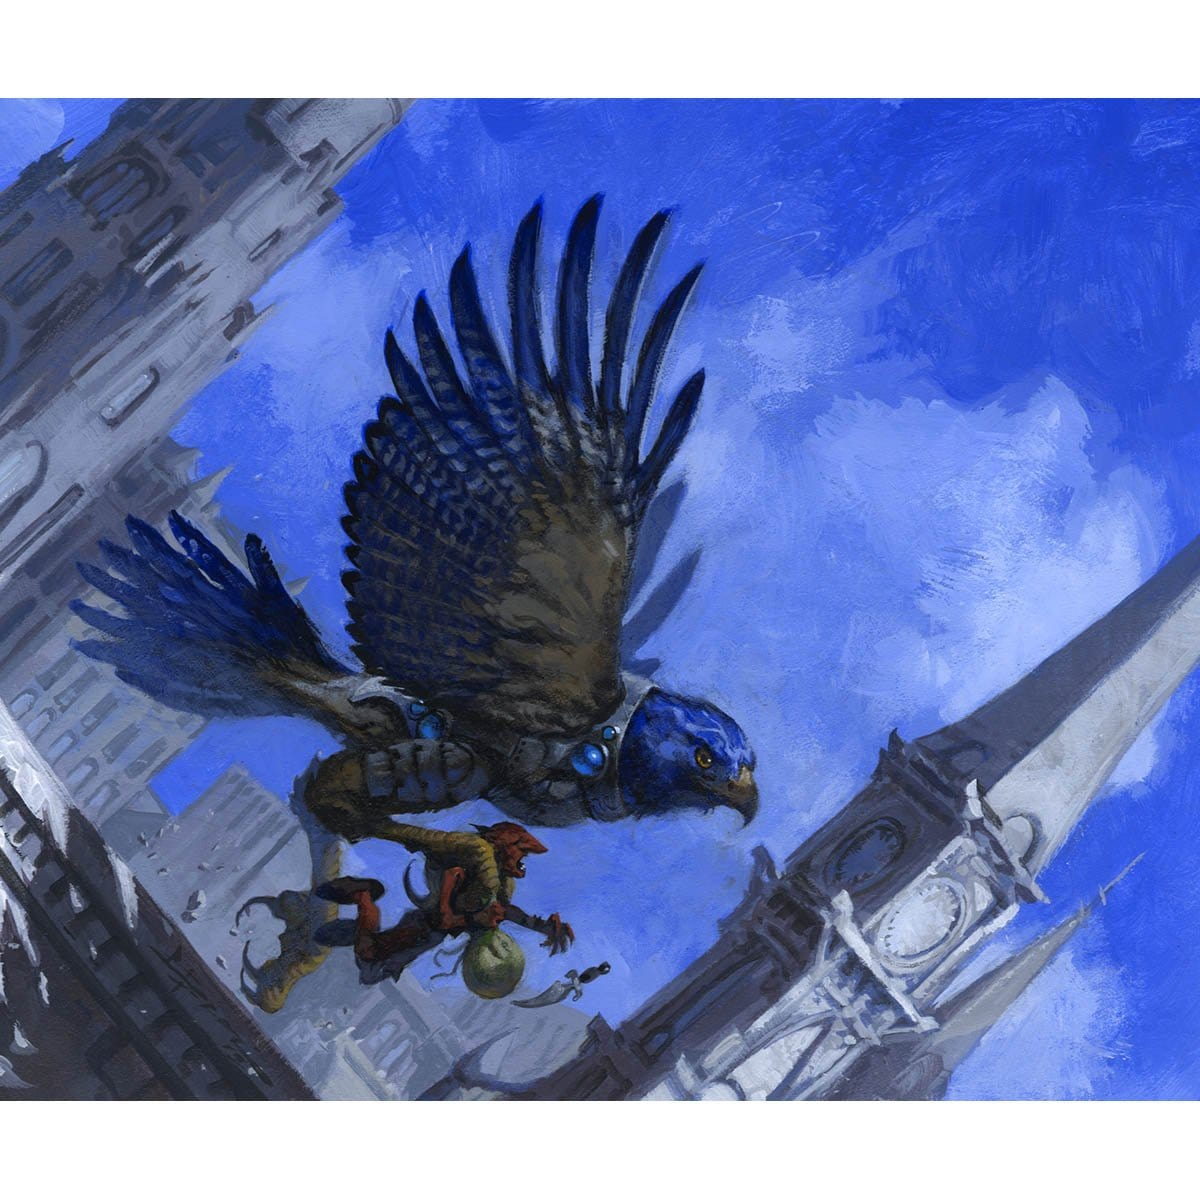 Skymark Roc Print - Print - Original Magic Art - Accessories for Magic the Gathering and other card games